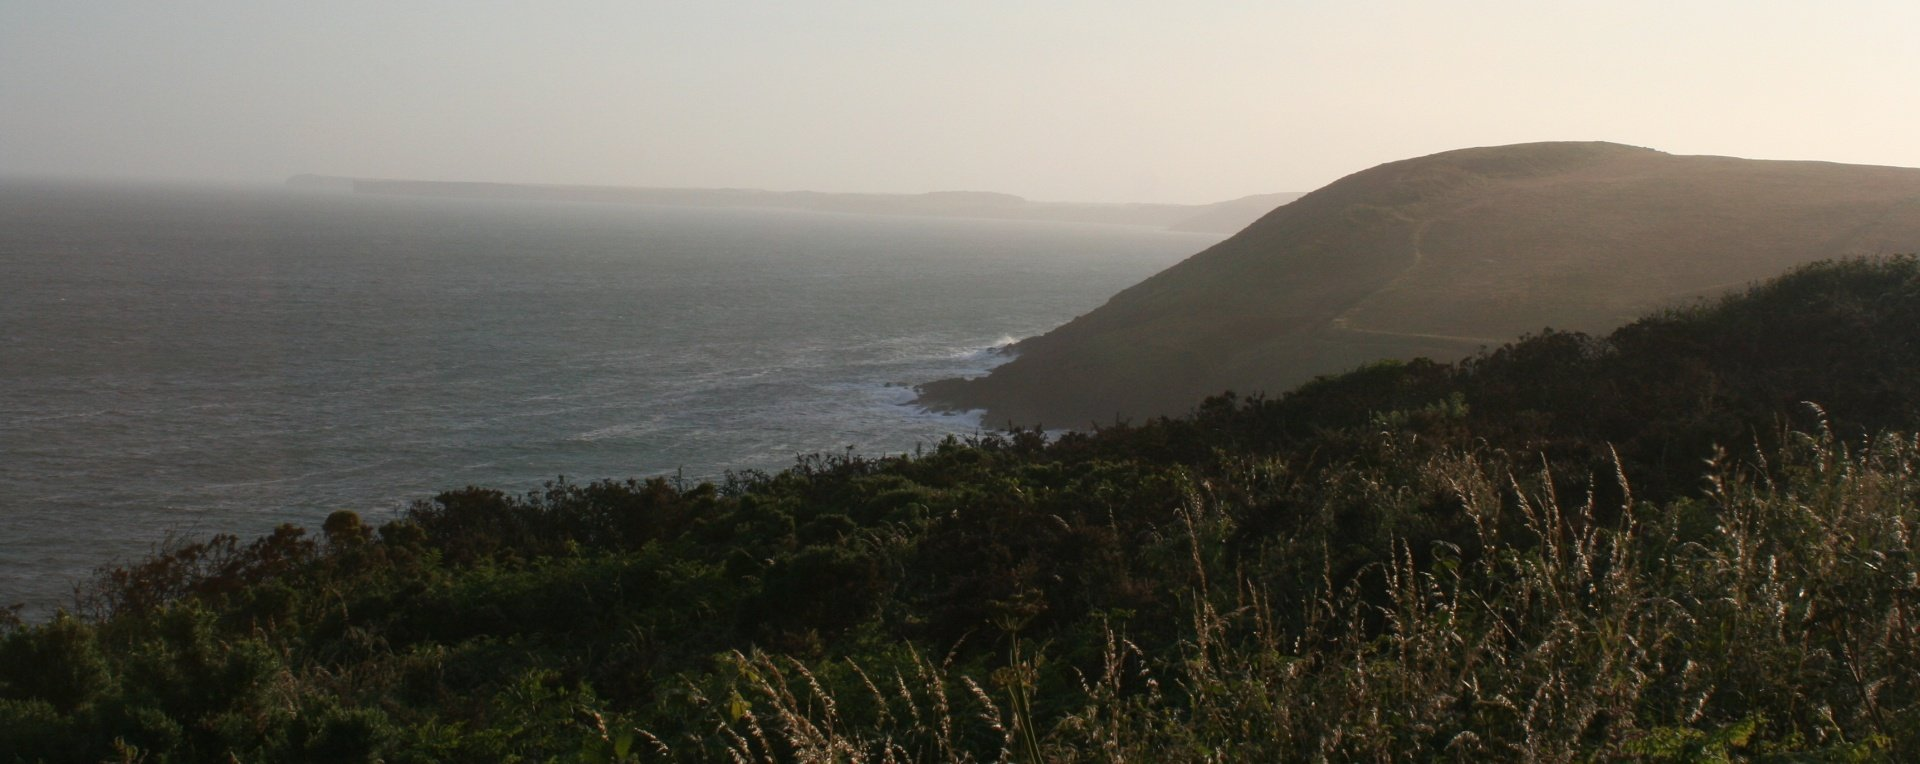 themadwop's photo of Manorbier